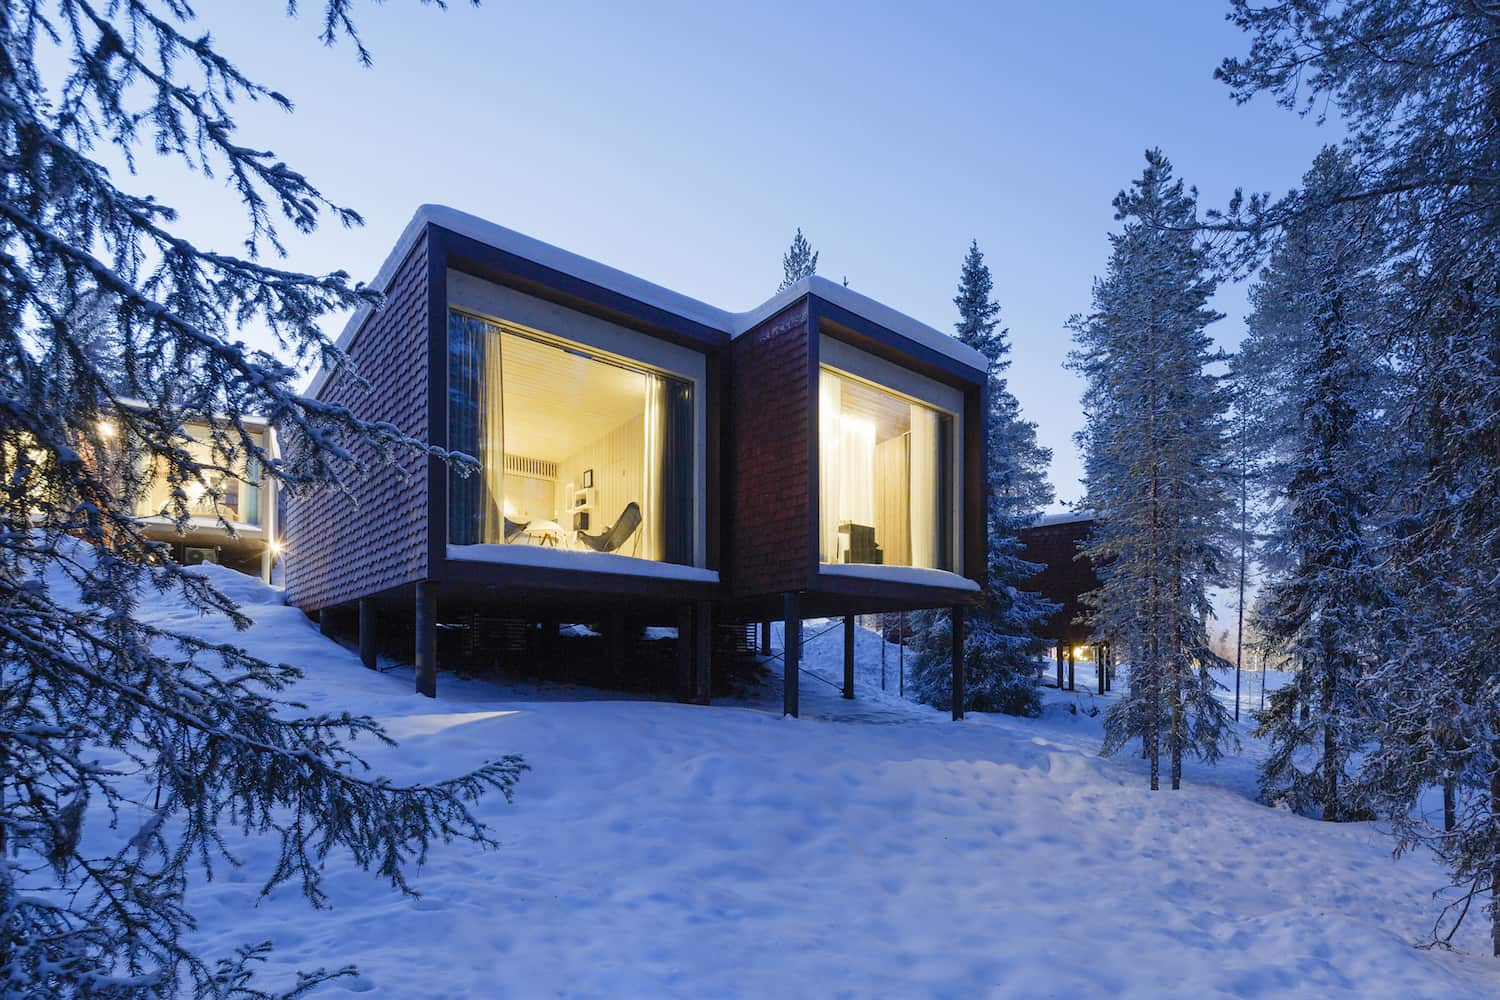 Arctic TreeHouse Hotel - Finlande